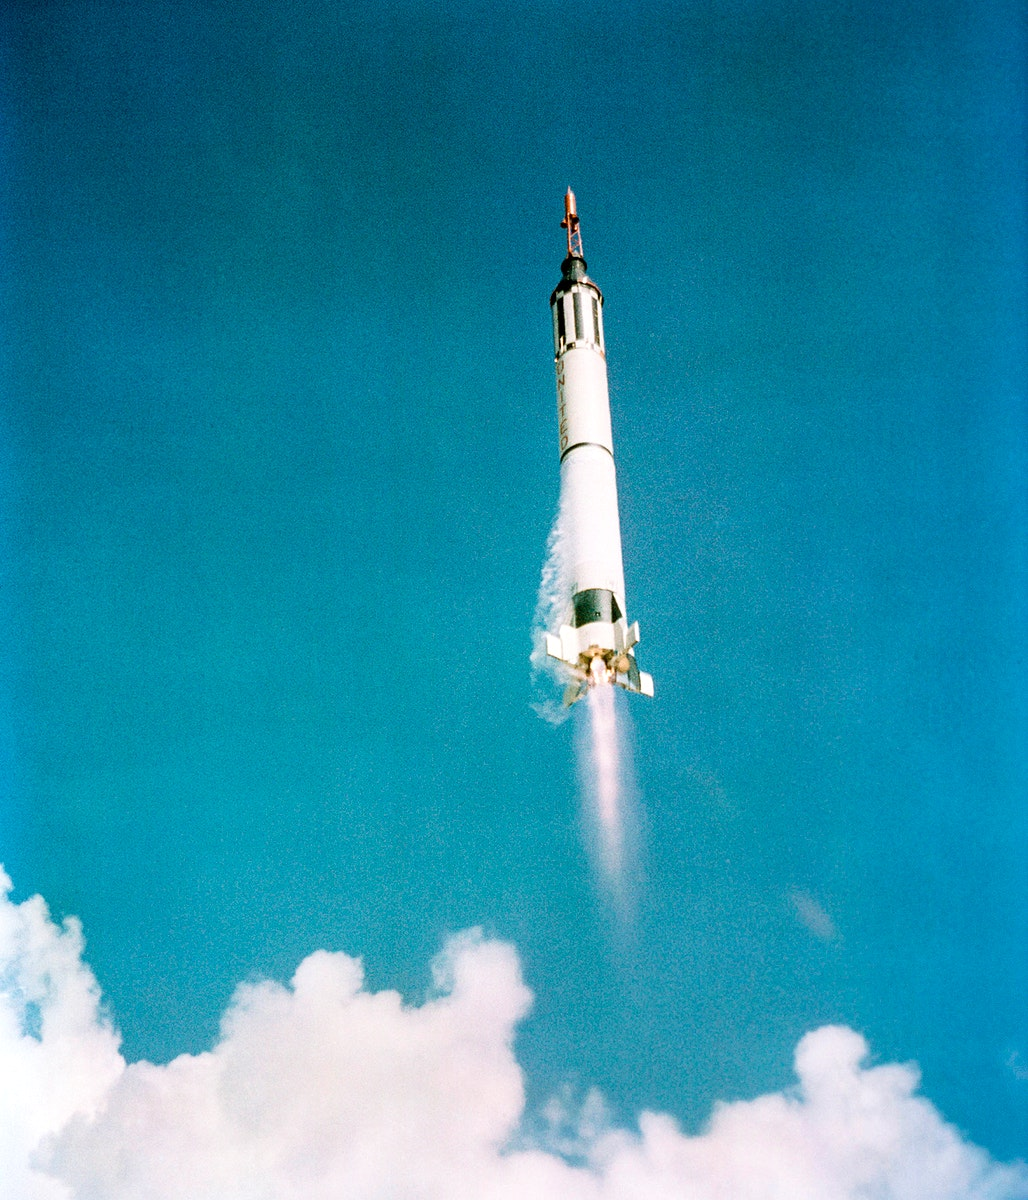 The launch of the Mercury-Redstone 3 spacecraft from Cape Canaveral on a suborbital mission, 5 May 1961. Original from NASA.…